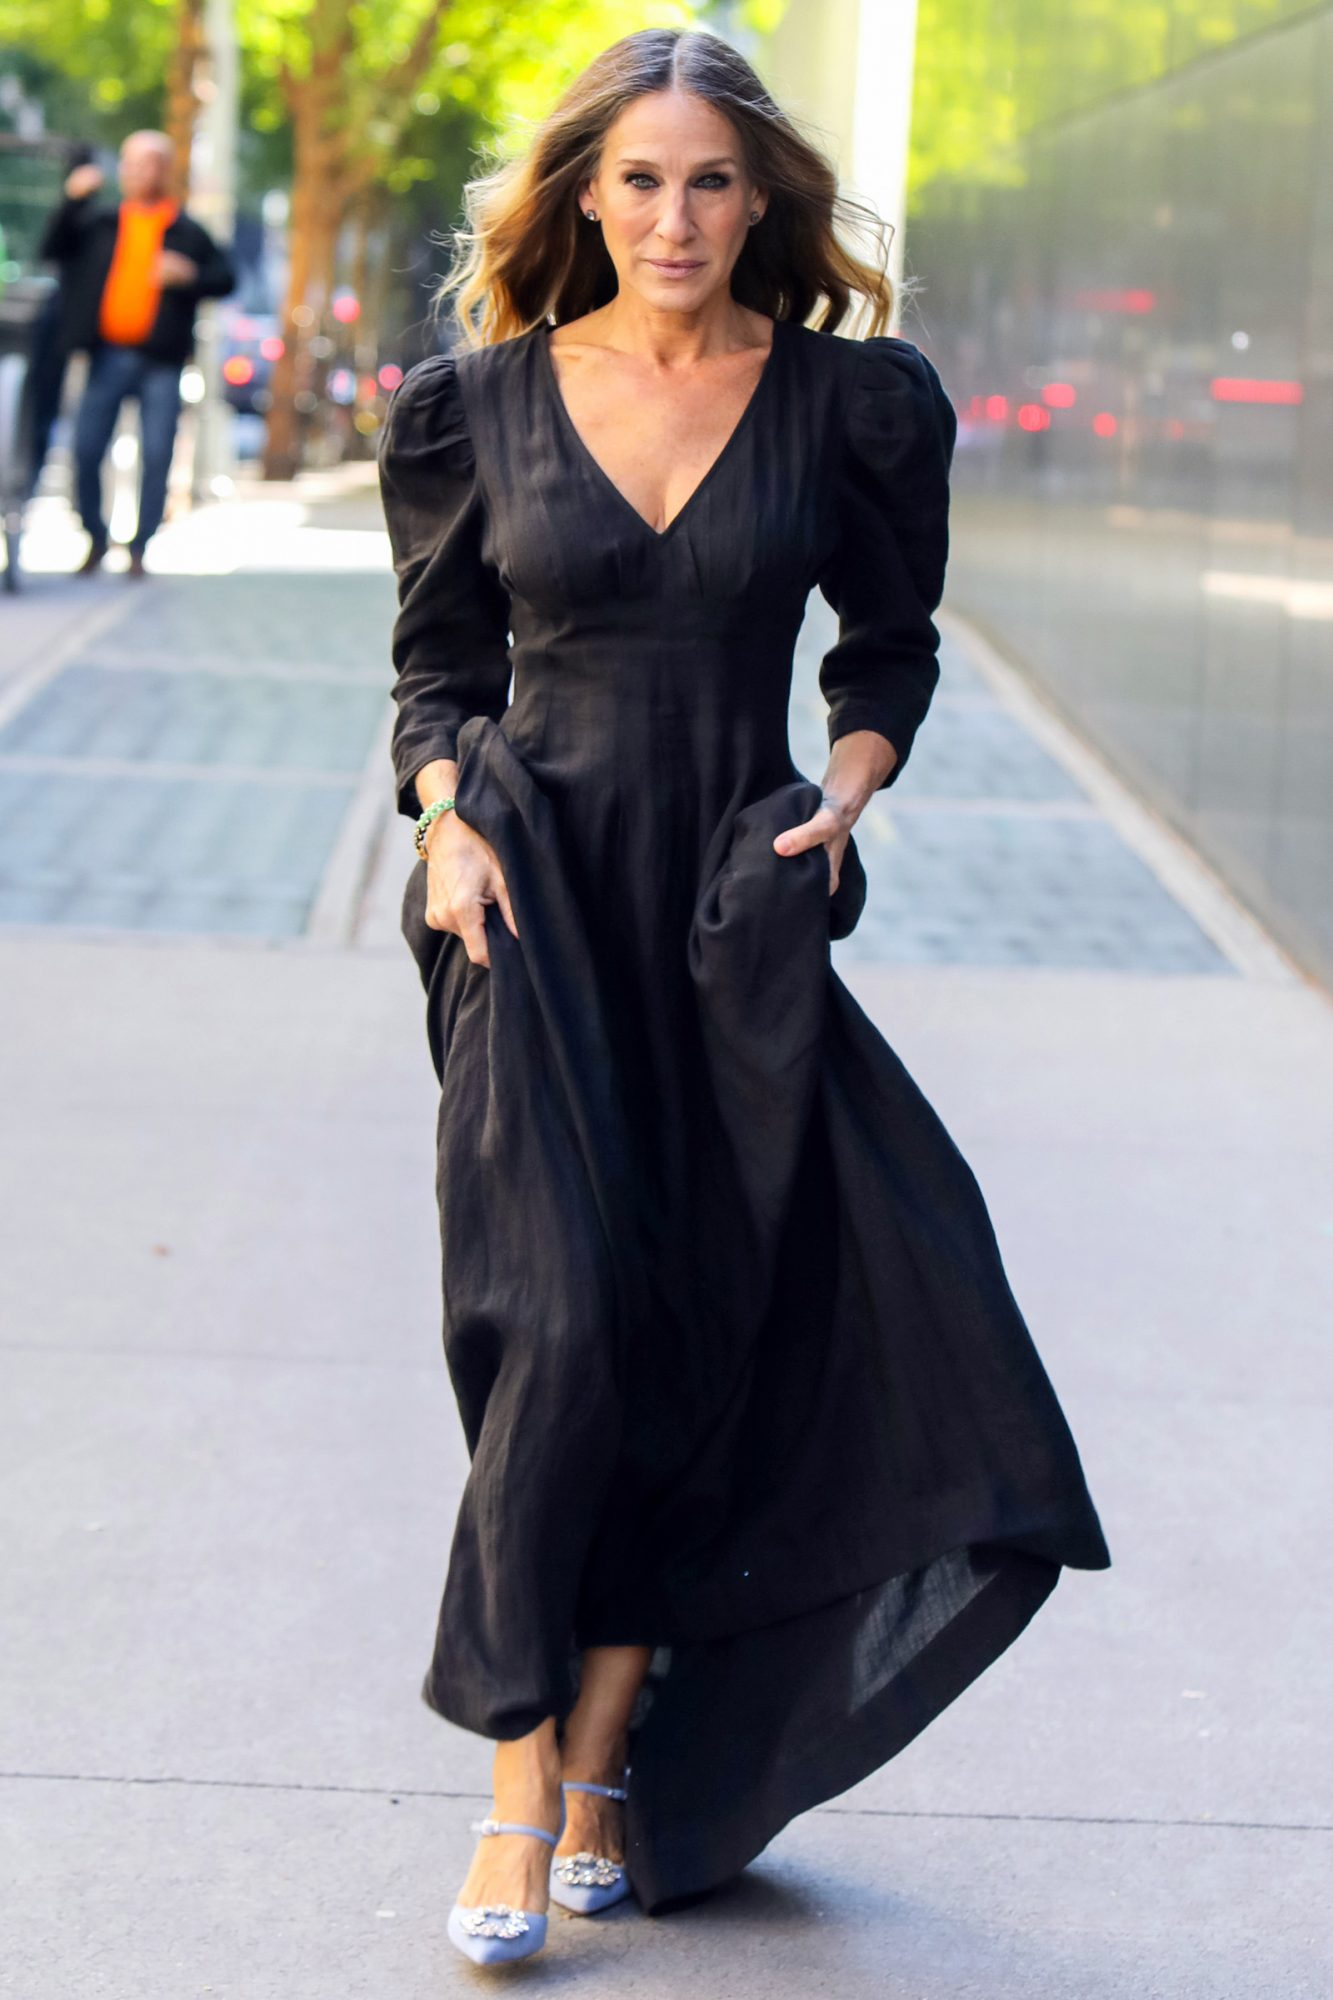 Sarah Jessica Parker is seen on October 15, 2020 in New York City